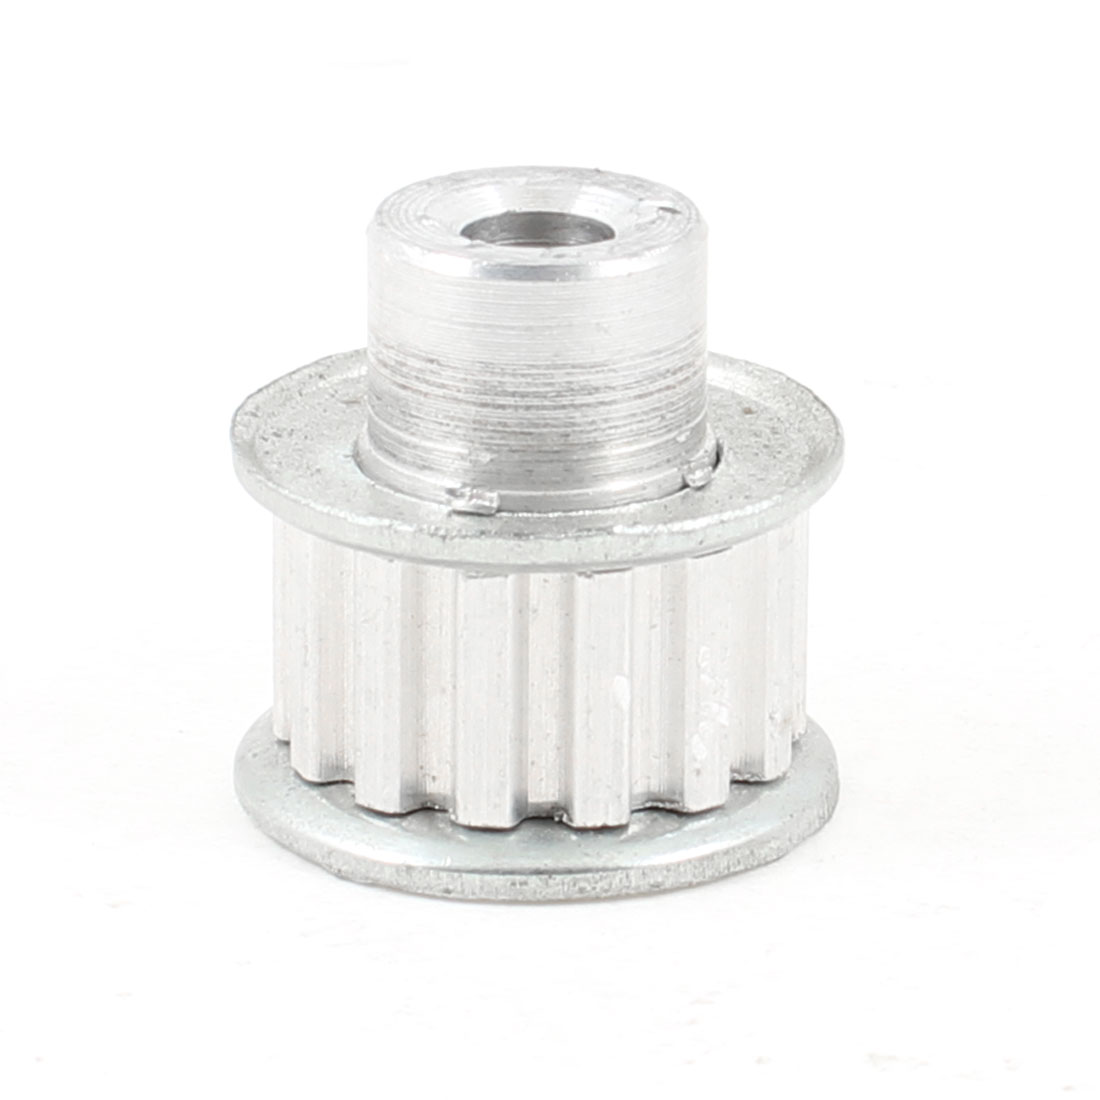 Silver Tone Aluminum Alloy XL Type 14 Teeth 6.2mm Pilot Bore Timing Pulley